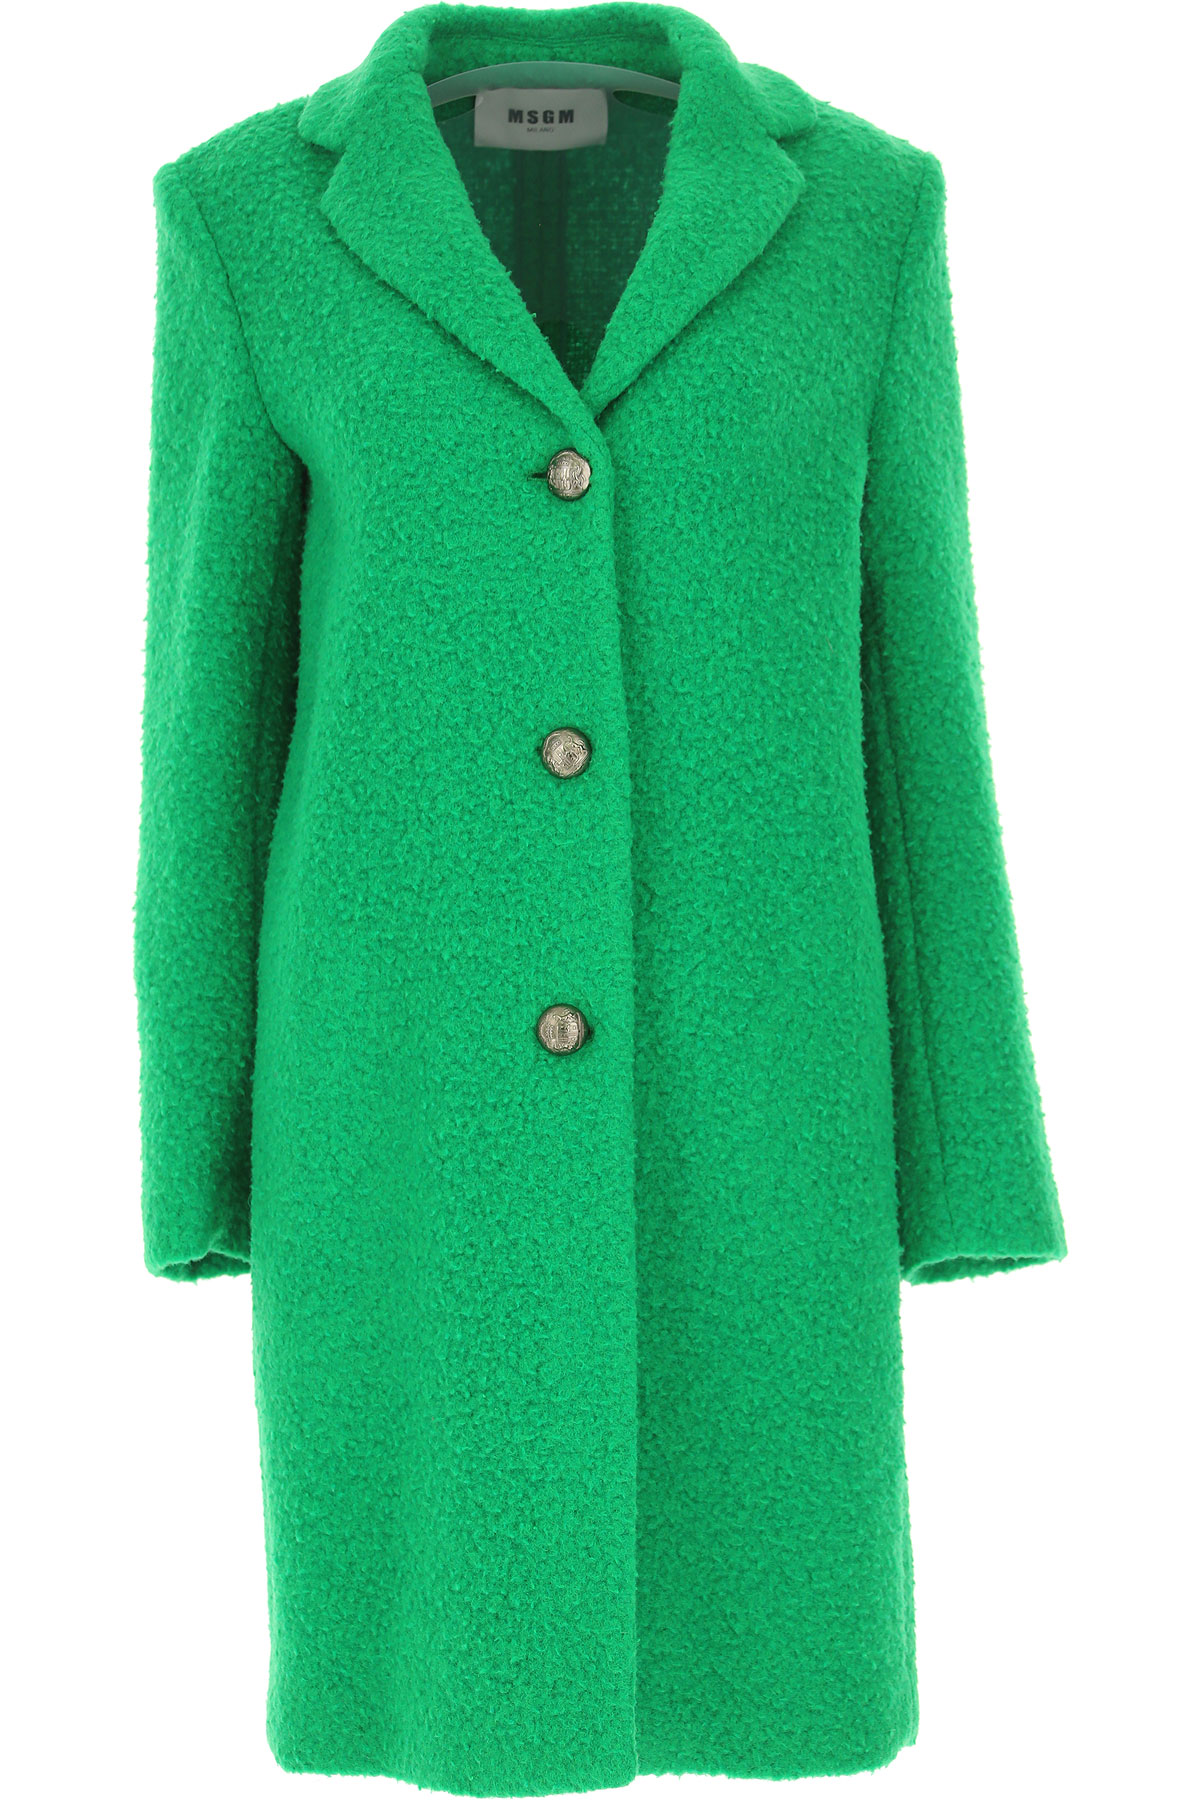 Image of MSGM Women\'s Coat, Grass Green, Virgin wool, 2017, UK 10 - US 8 - EU 42 UK 12 - US 10 - EU 44